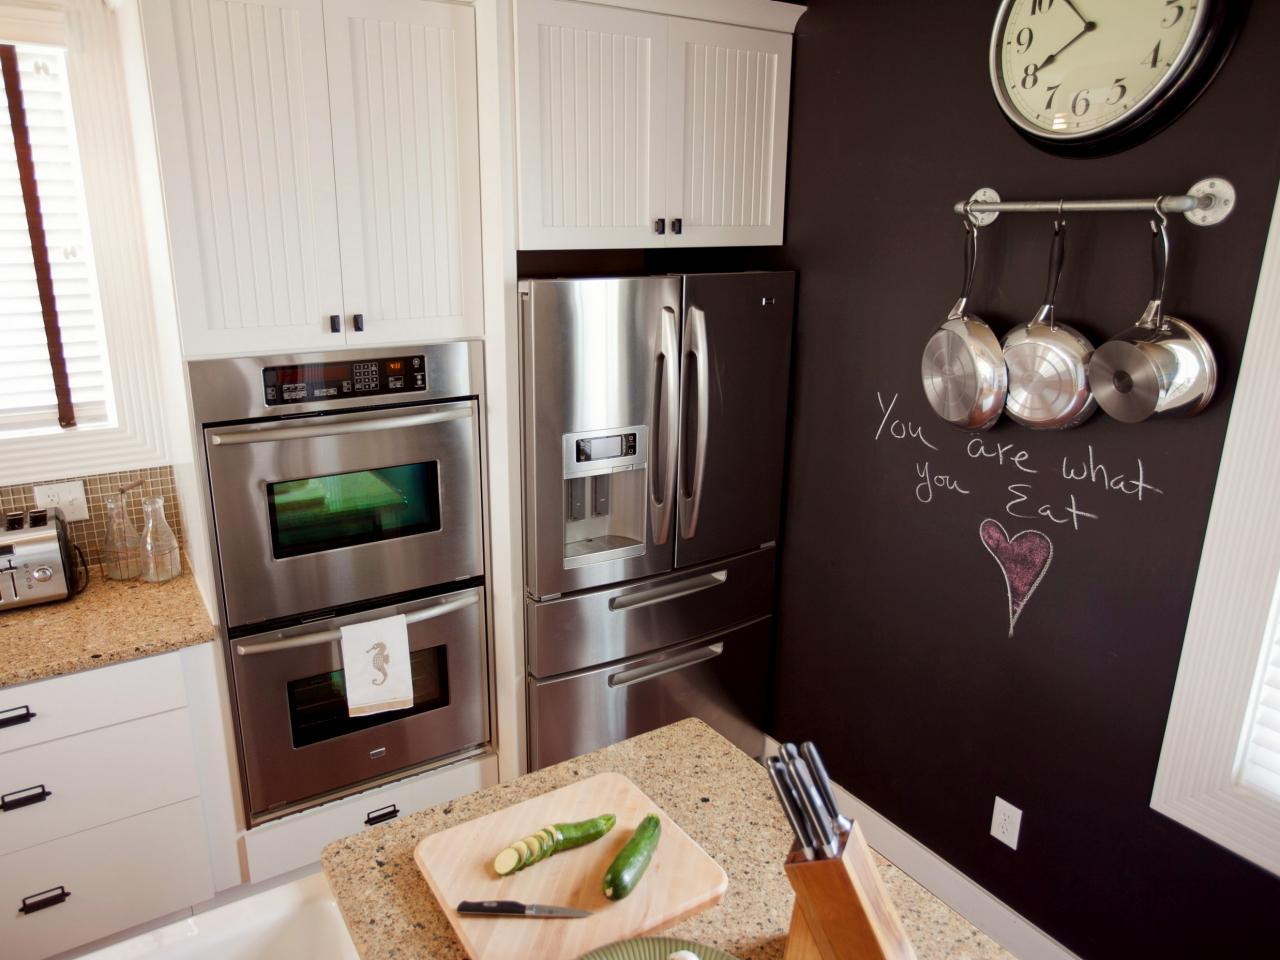 Chalkboard feature wall in the kitchen